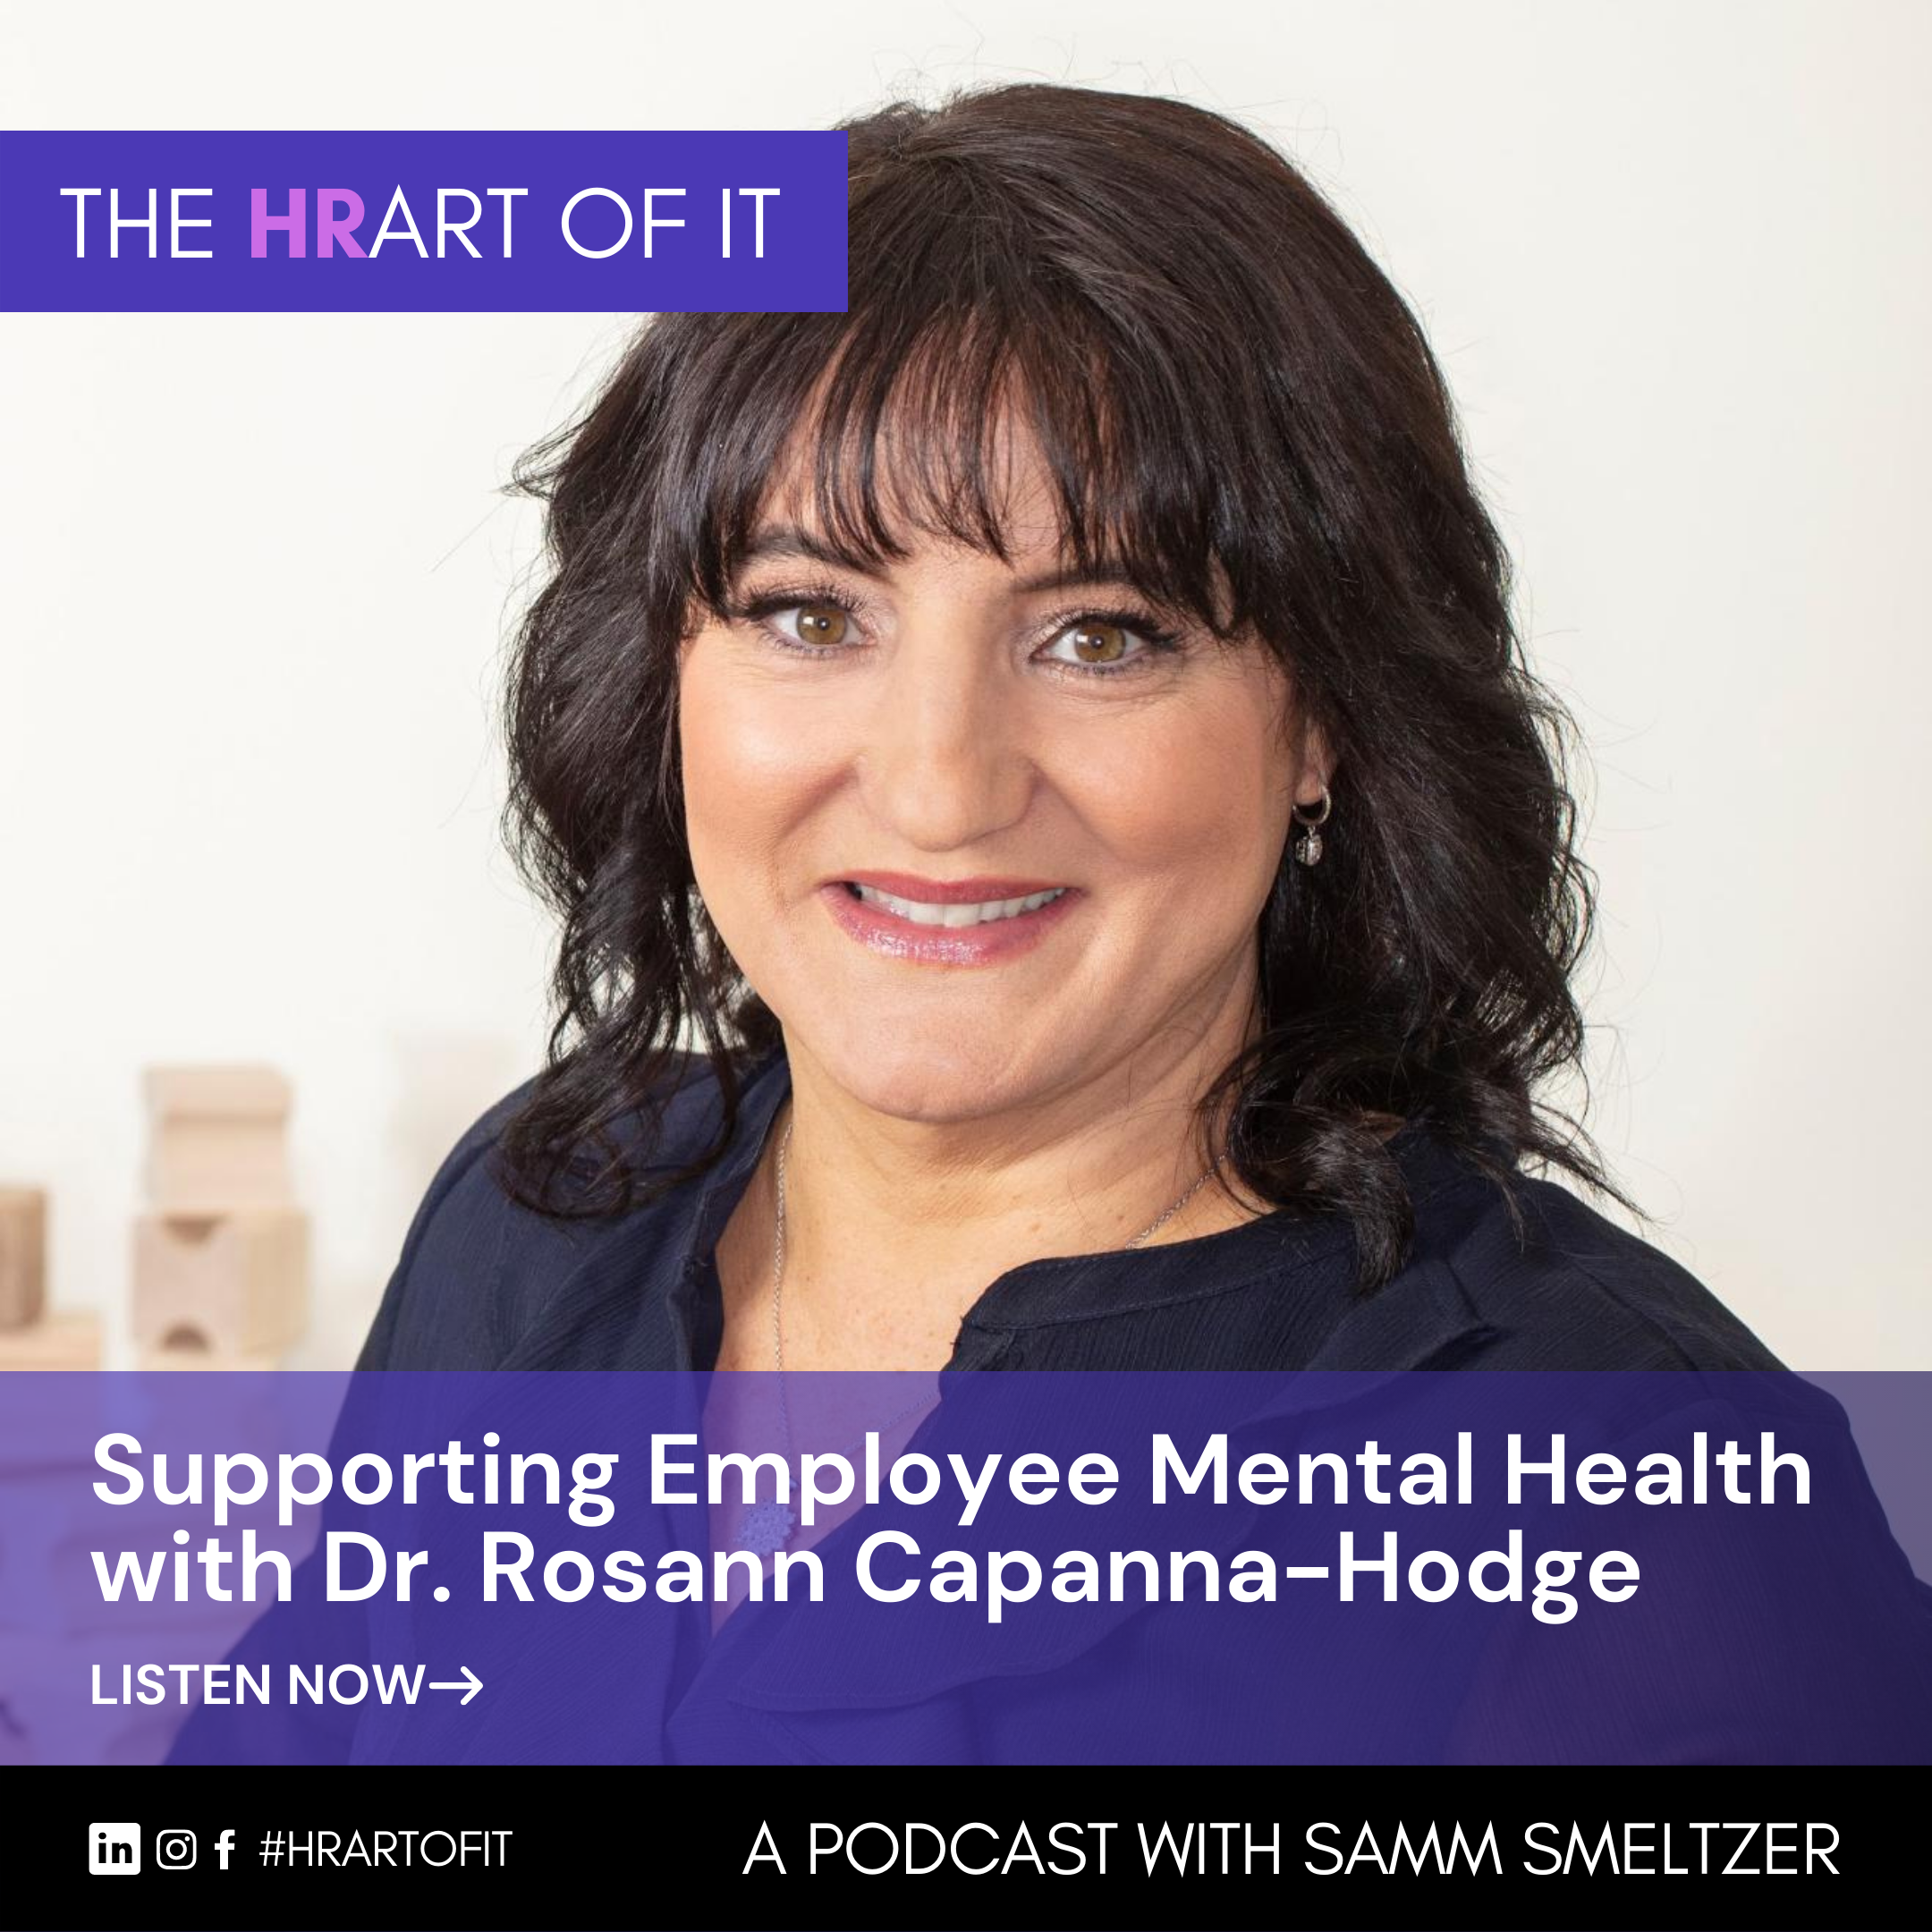 Supporting Employee Mental Health with Dr. Roseann Capanna-Hodge